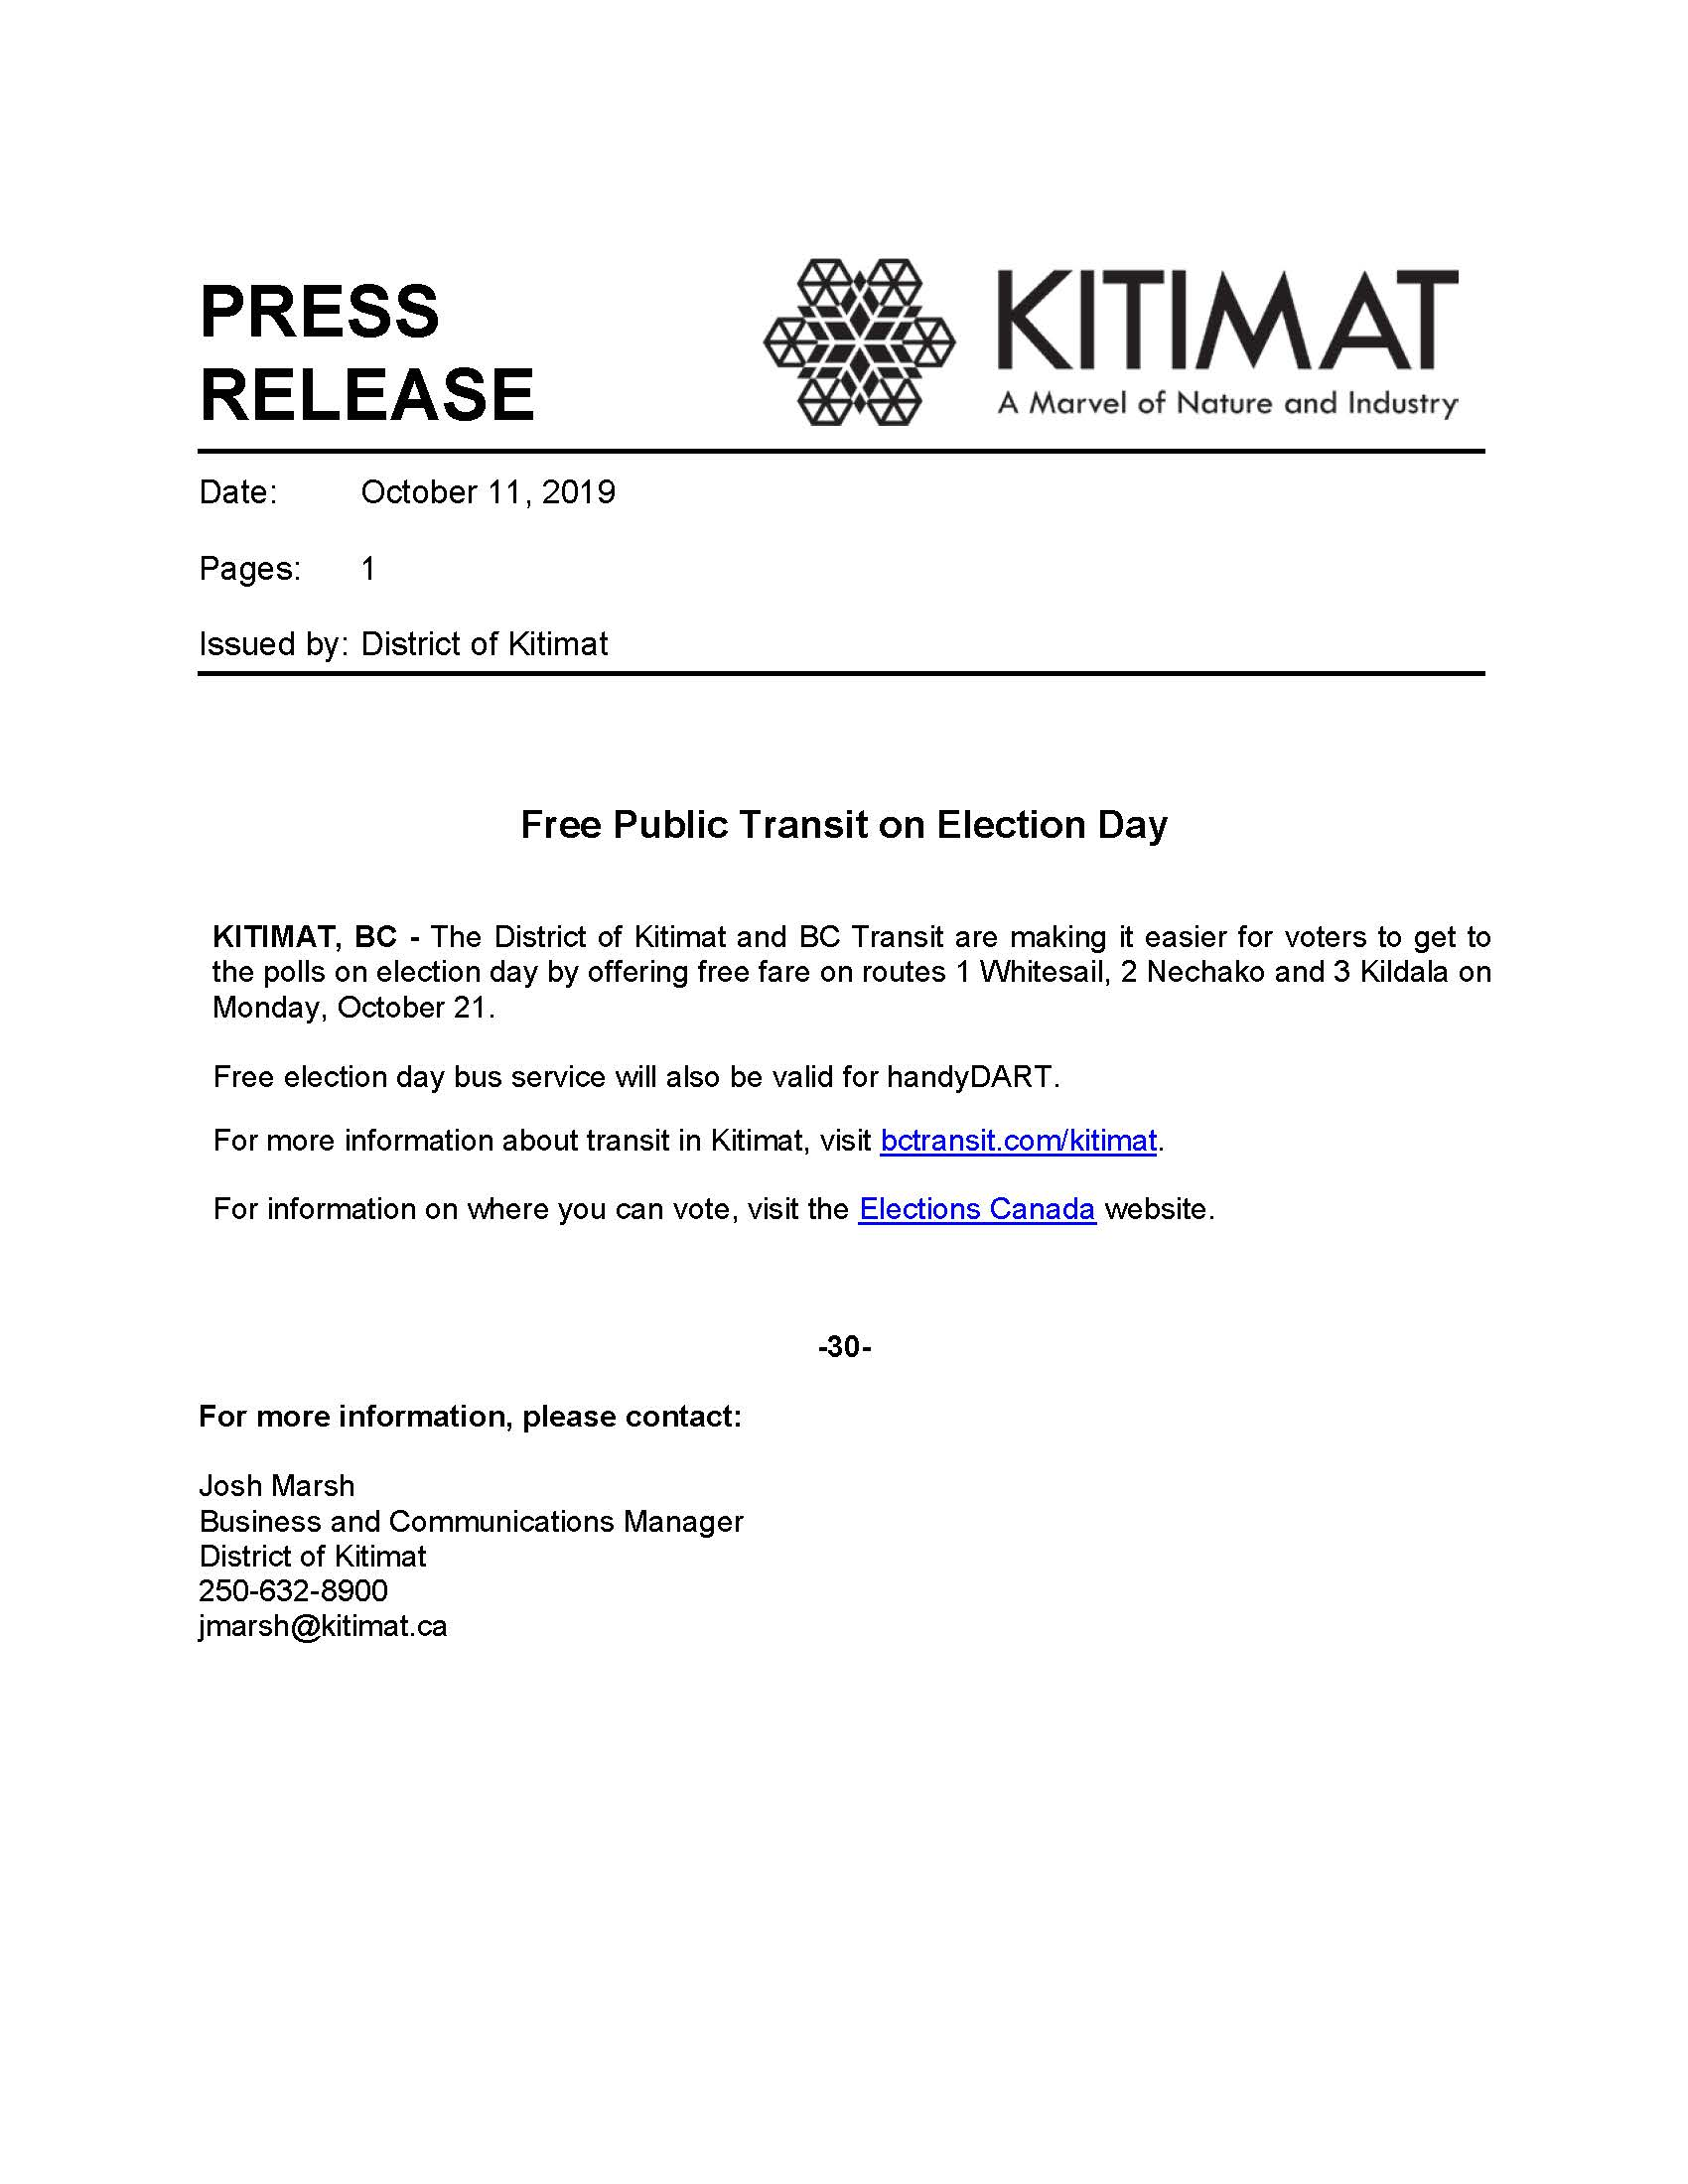 19-10-11_DoK Press Release_Free Bus Service on Election Day